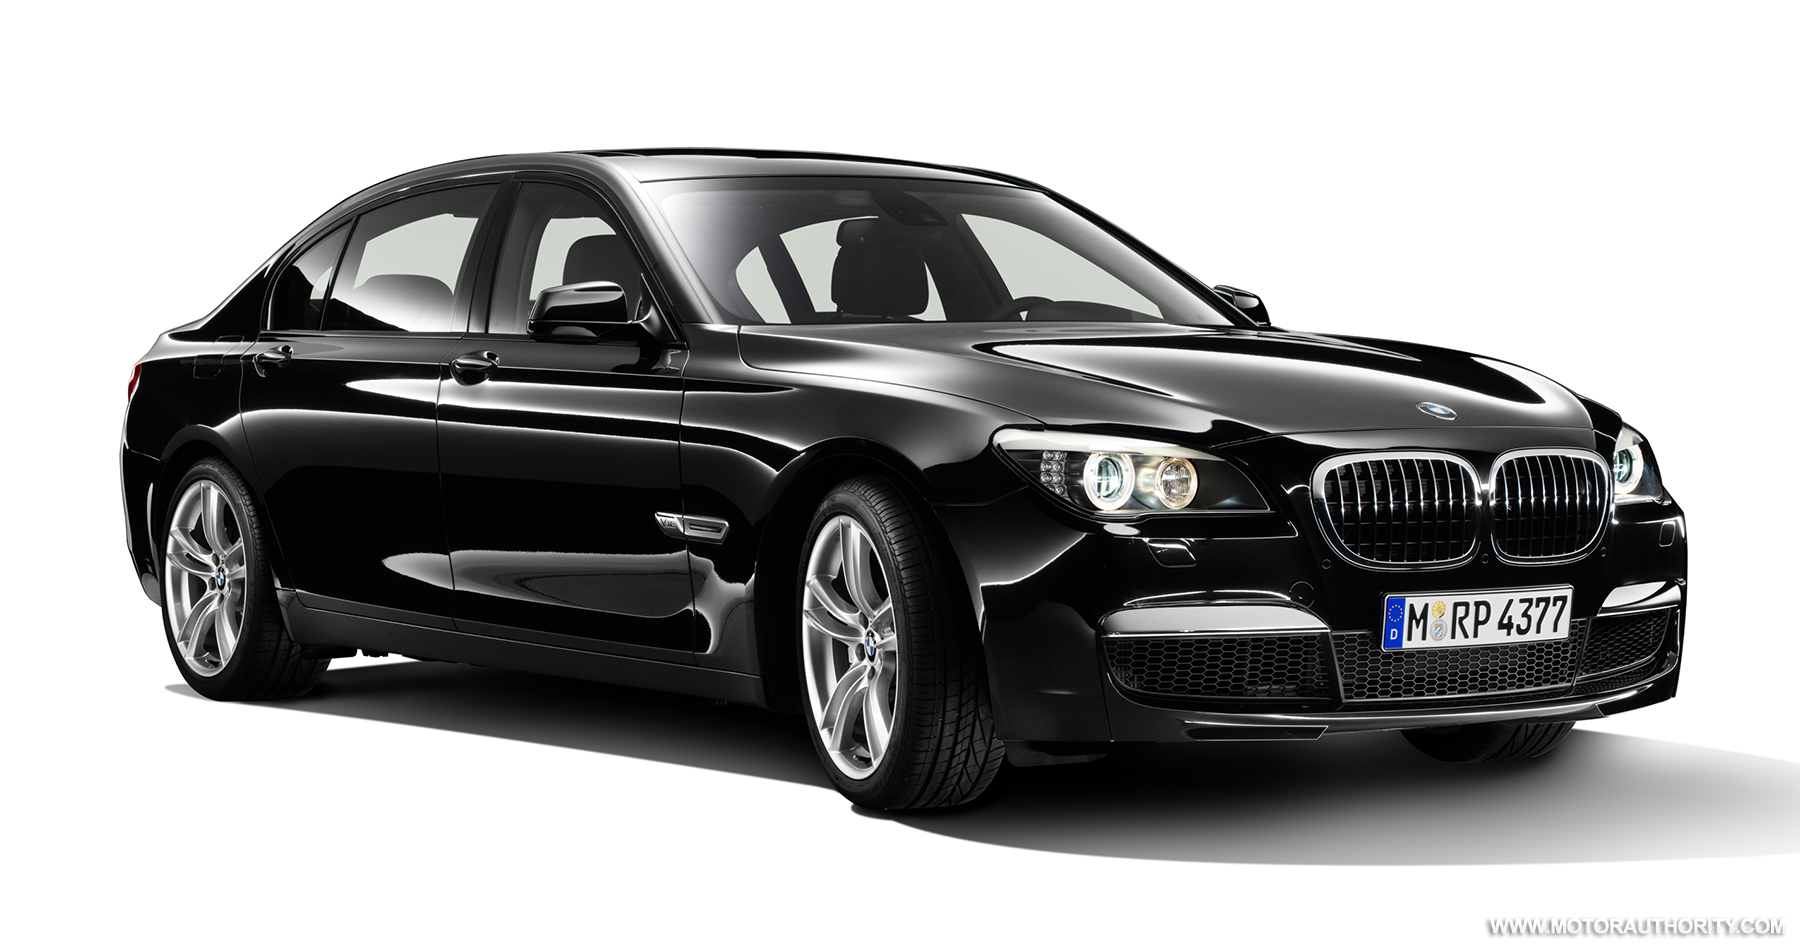 BMW Releases New Photos Of M Sport Package For 7 Series